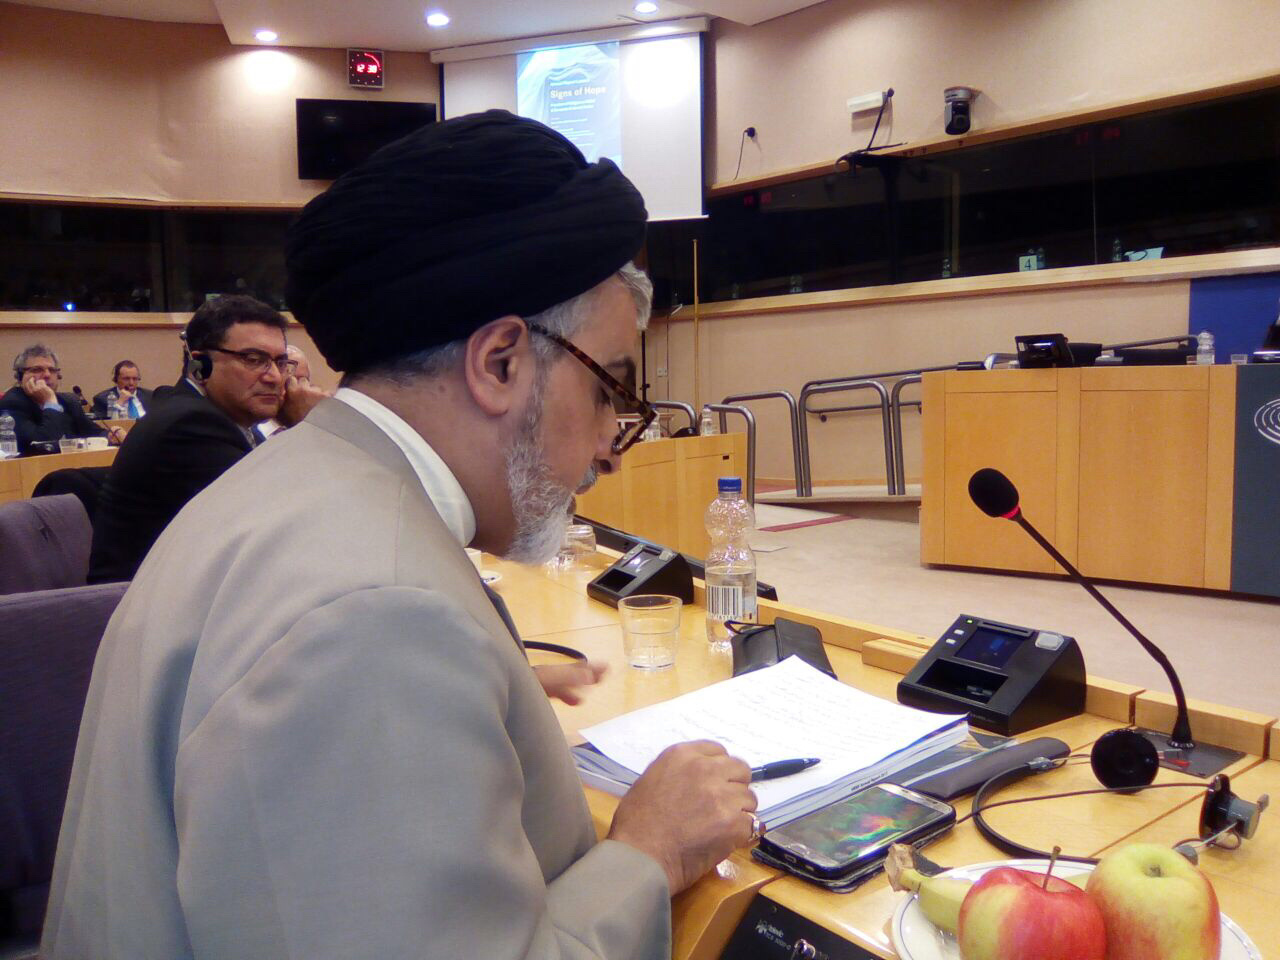 Through the link below it is possible to listen to the words of Seyedzyaoddin Salehi